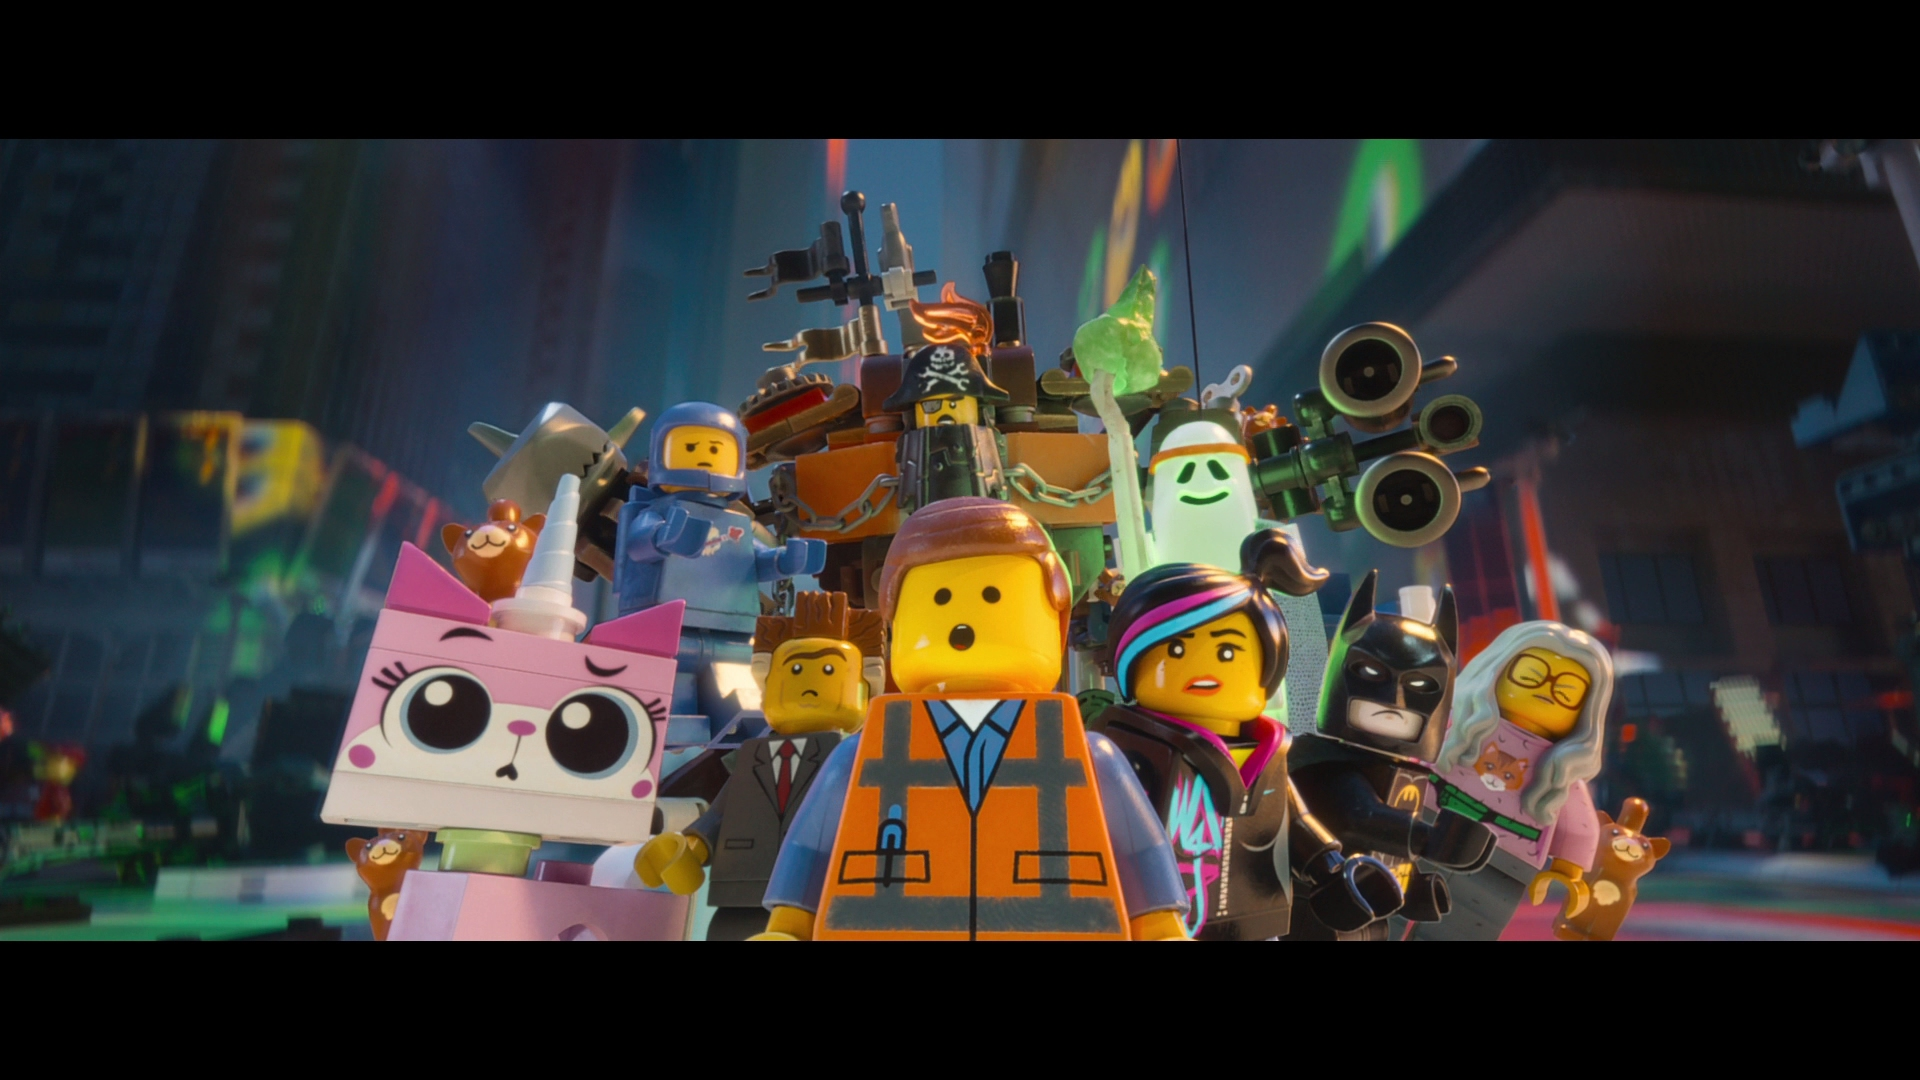 Everything is Awesome (Lego Movie) by saphira305 on DeviantArt |Awesome Lego Movie